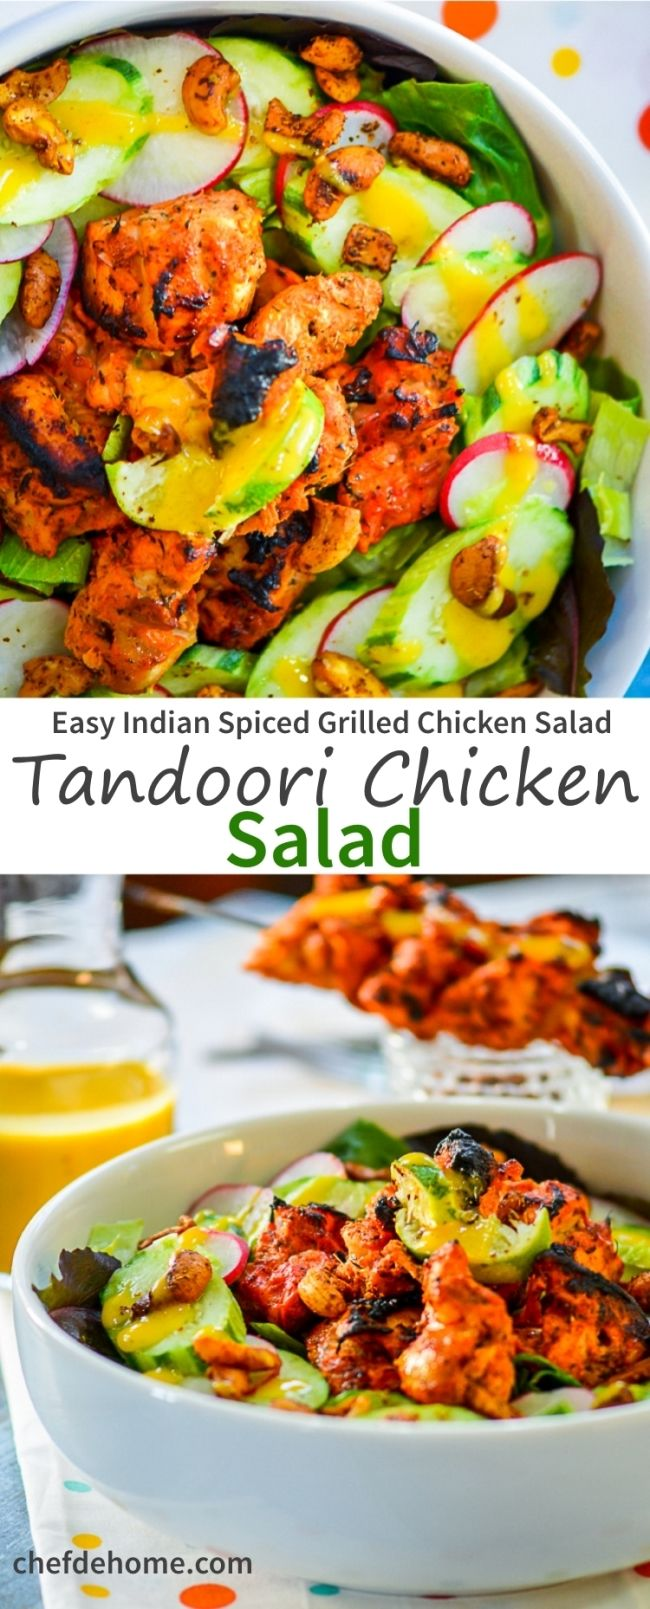 Spicy Tandoori Chicken Salad with Cooling Mango Yogurt Dressing | chefdehome.com